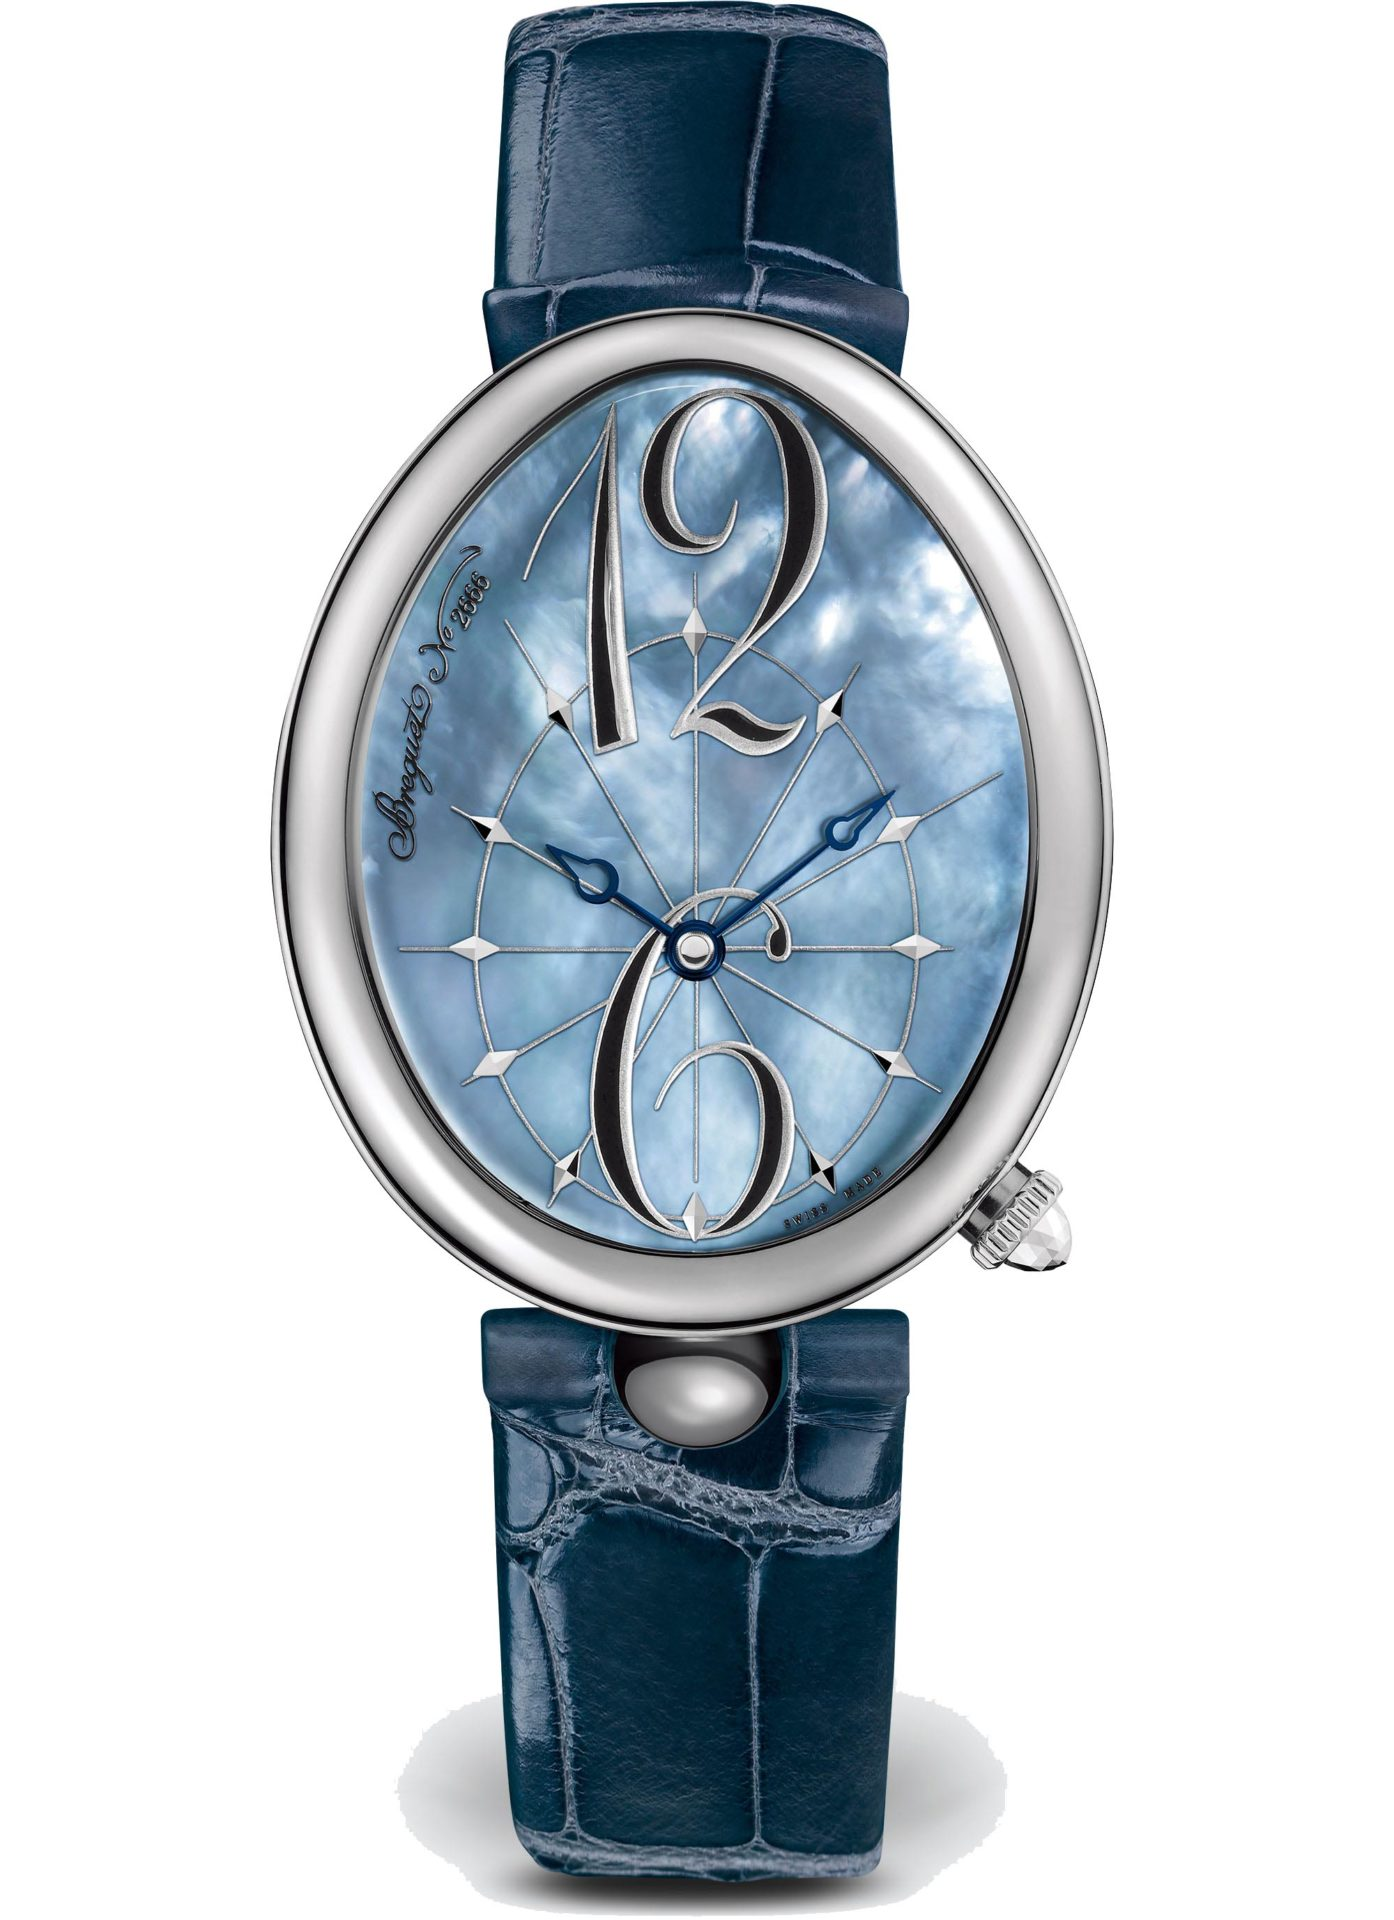 Breguet-Reine-de-Naples-8967-Hall-of-Time-8967st-v8-986